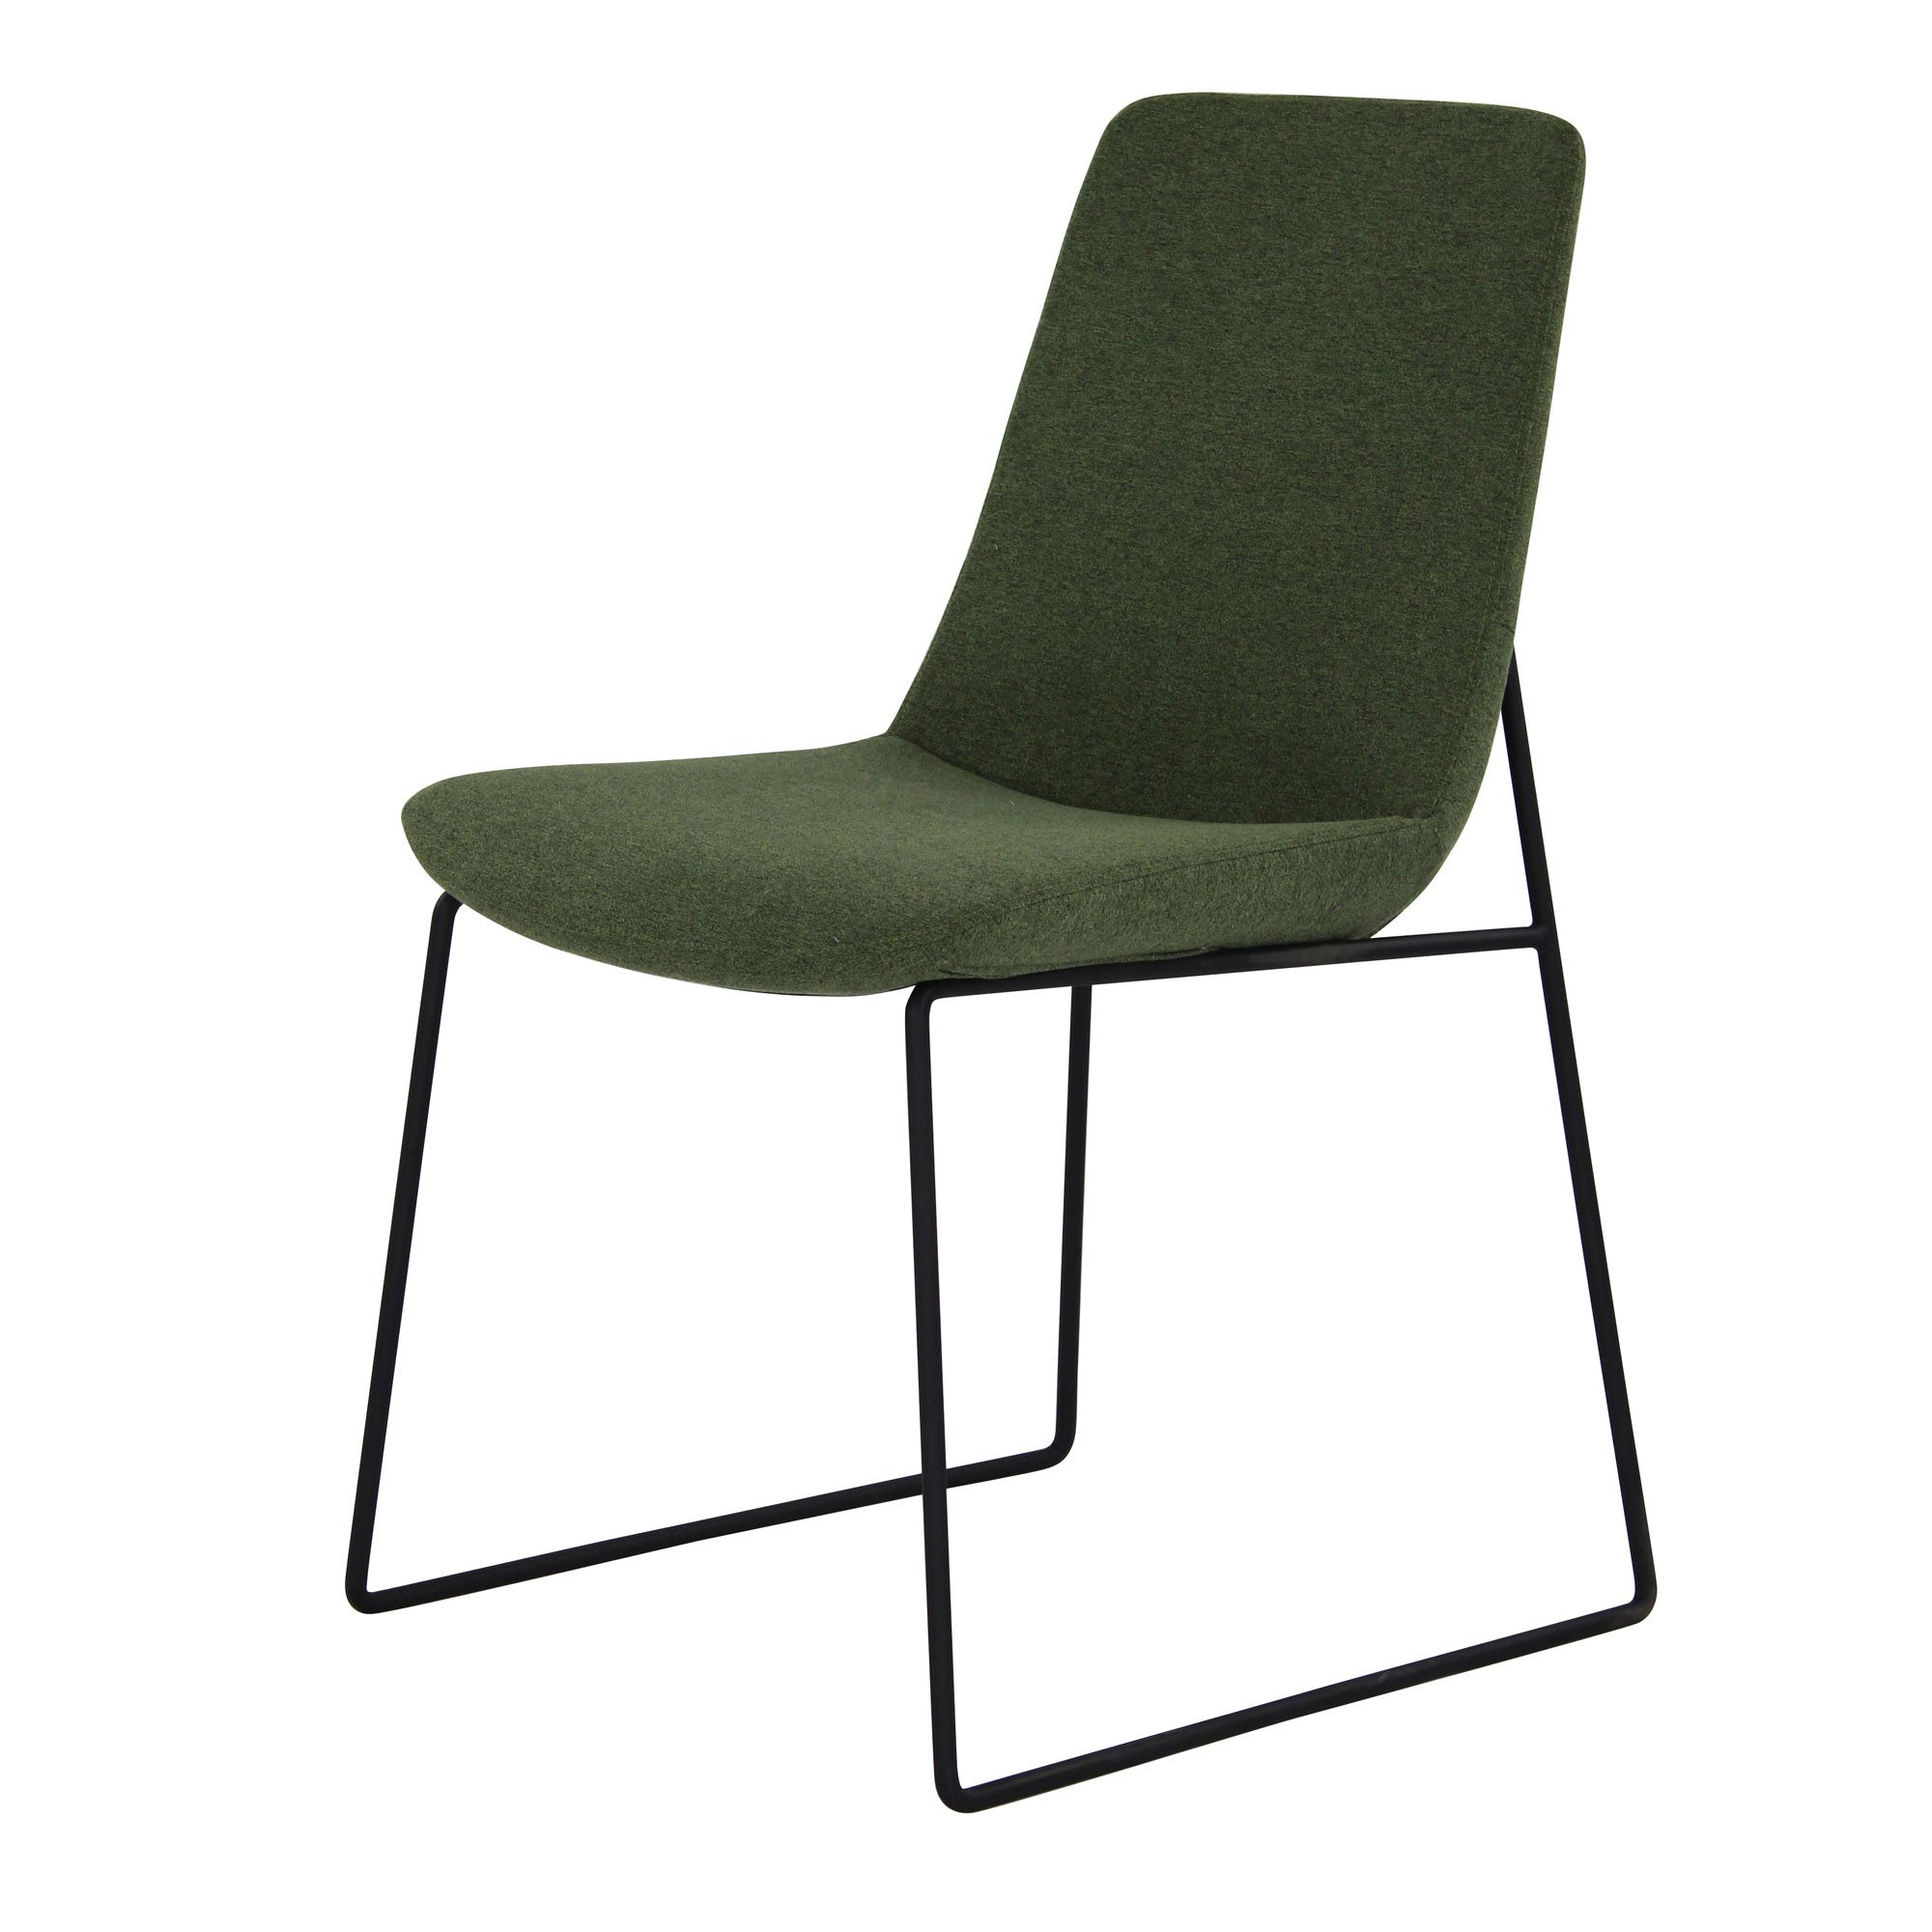 Minimal And Sleek Are Two Words To Describe Our Clark Dining Chairs Green Dining Chairs Steel Dining Chairs Dining Chairs